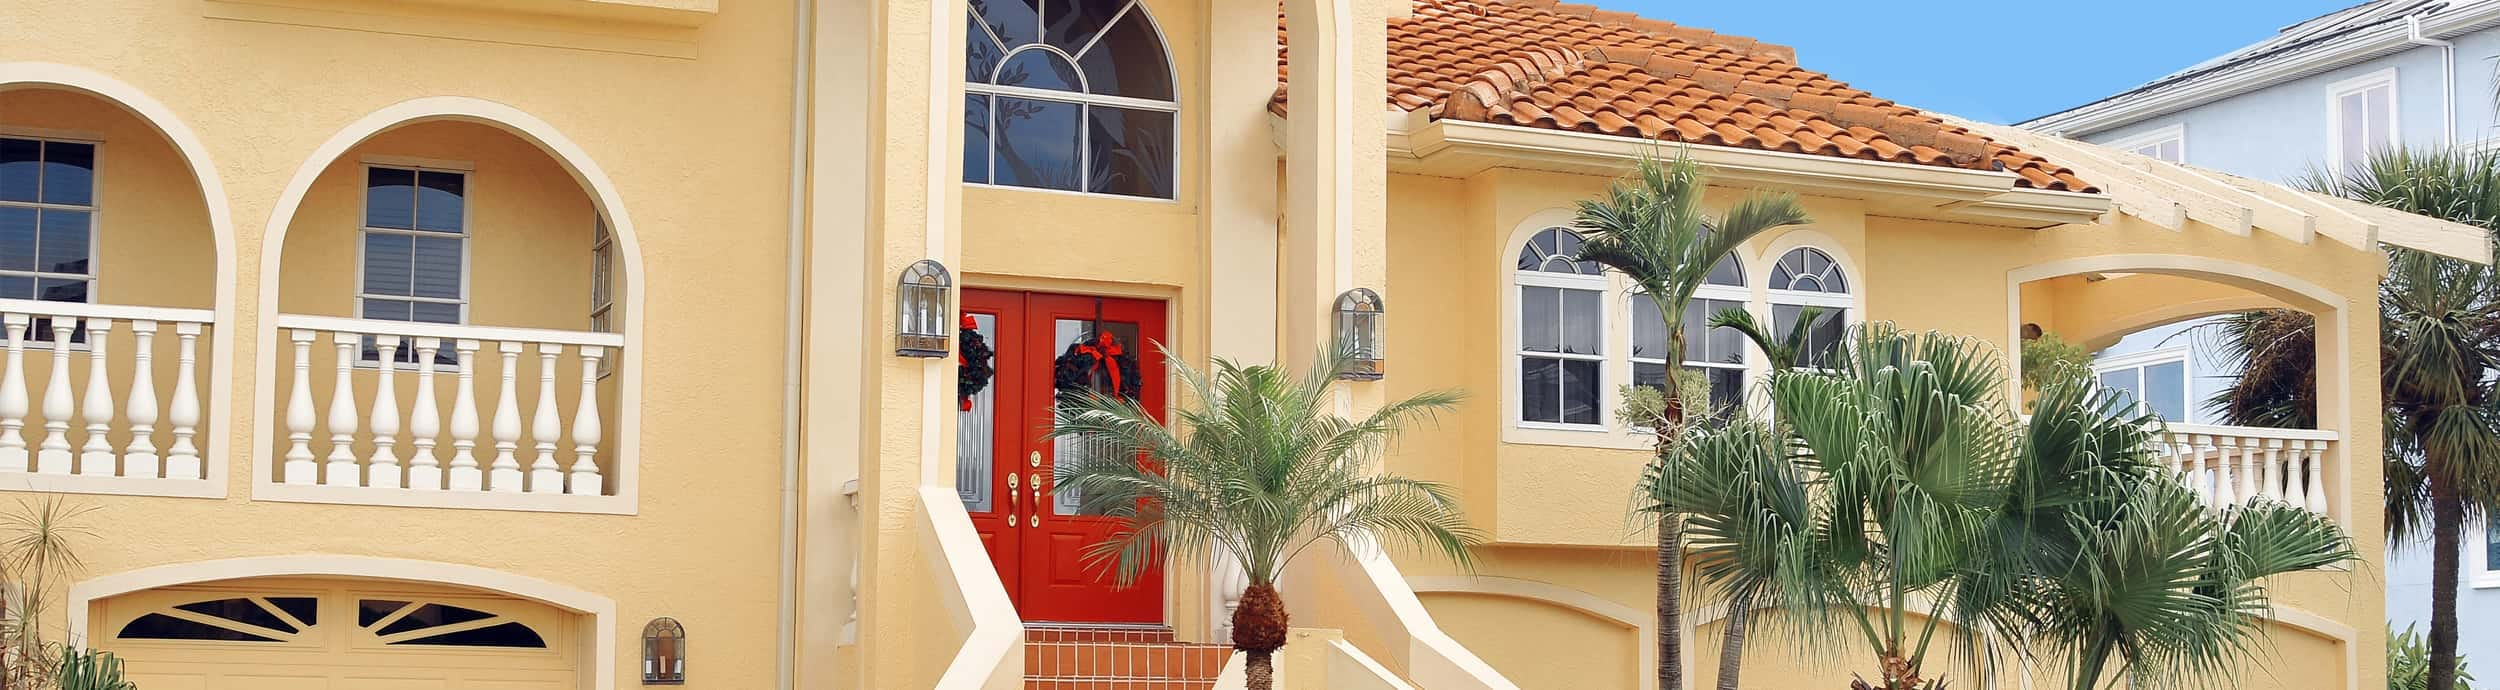 Berger paints exterior color scheme photos paint color ideas Berger paints exterior house colors